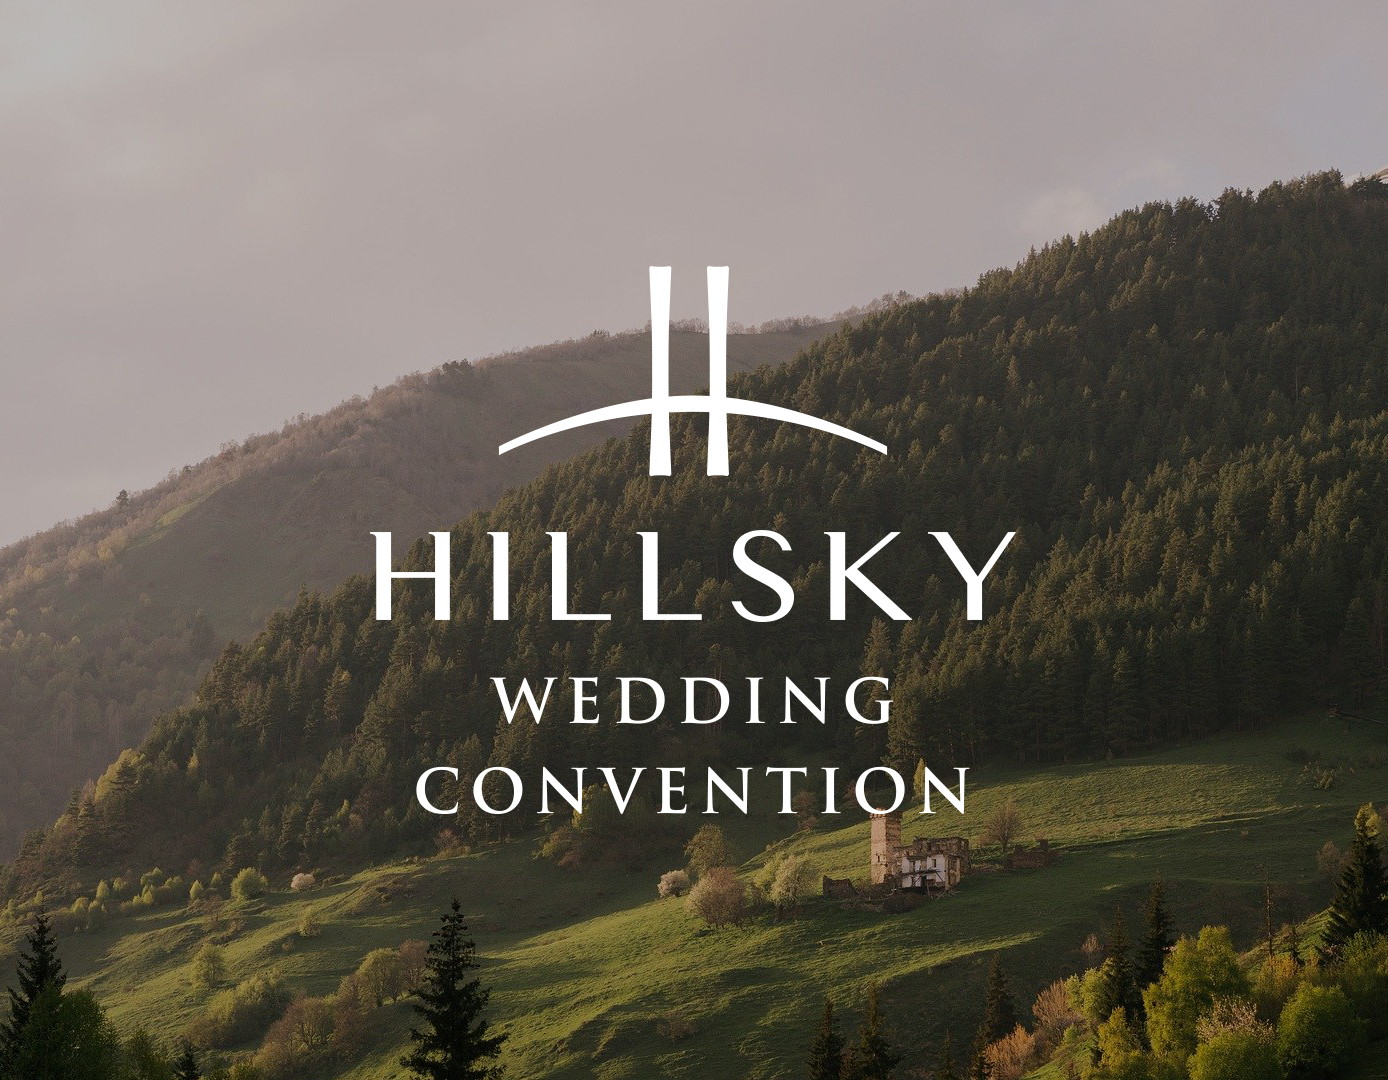 HILLSKY Wedding Convention